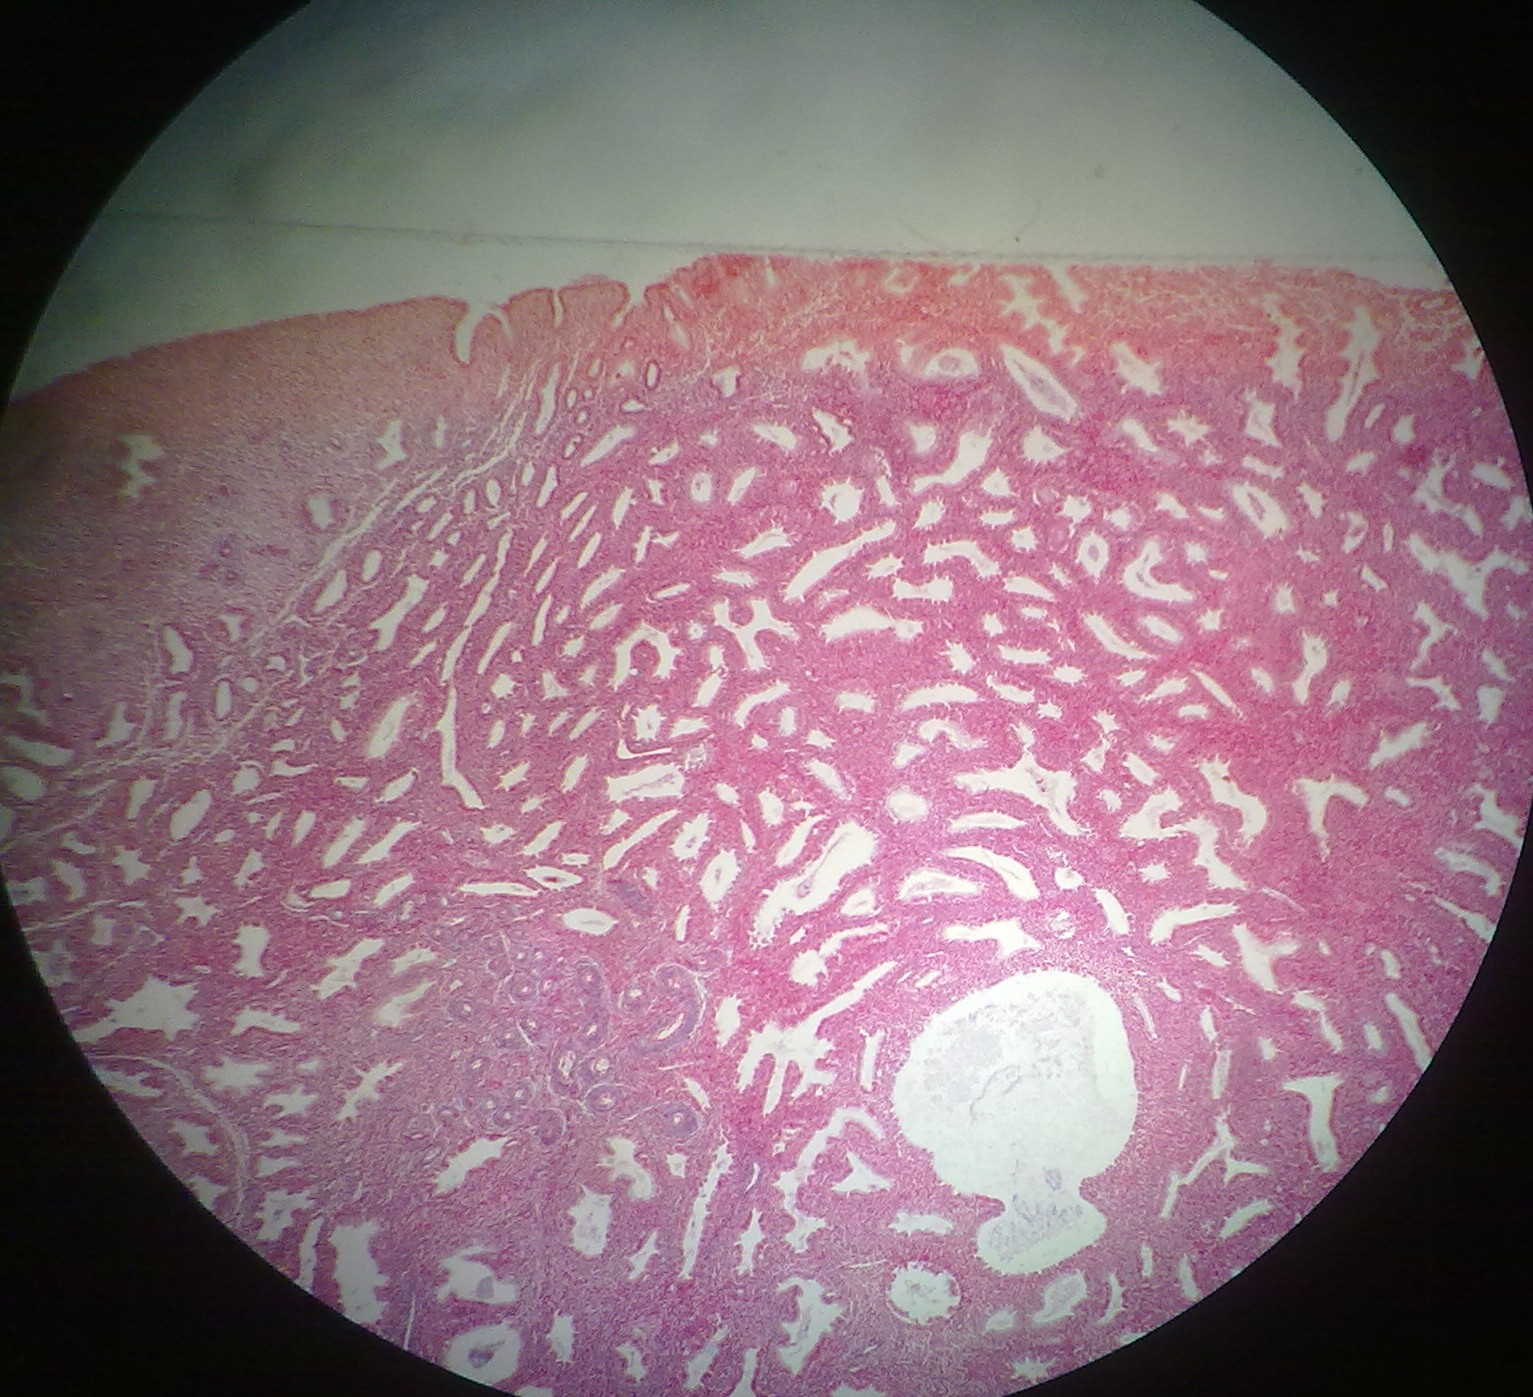 Uterus Histology Functional Layer Three layers  mucosaUterus Histology Functional Layer